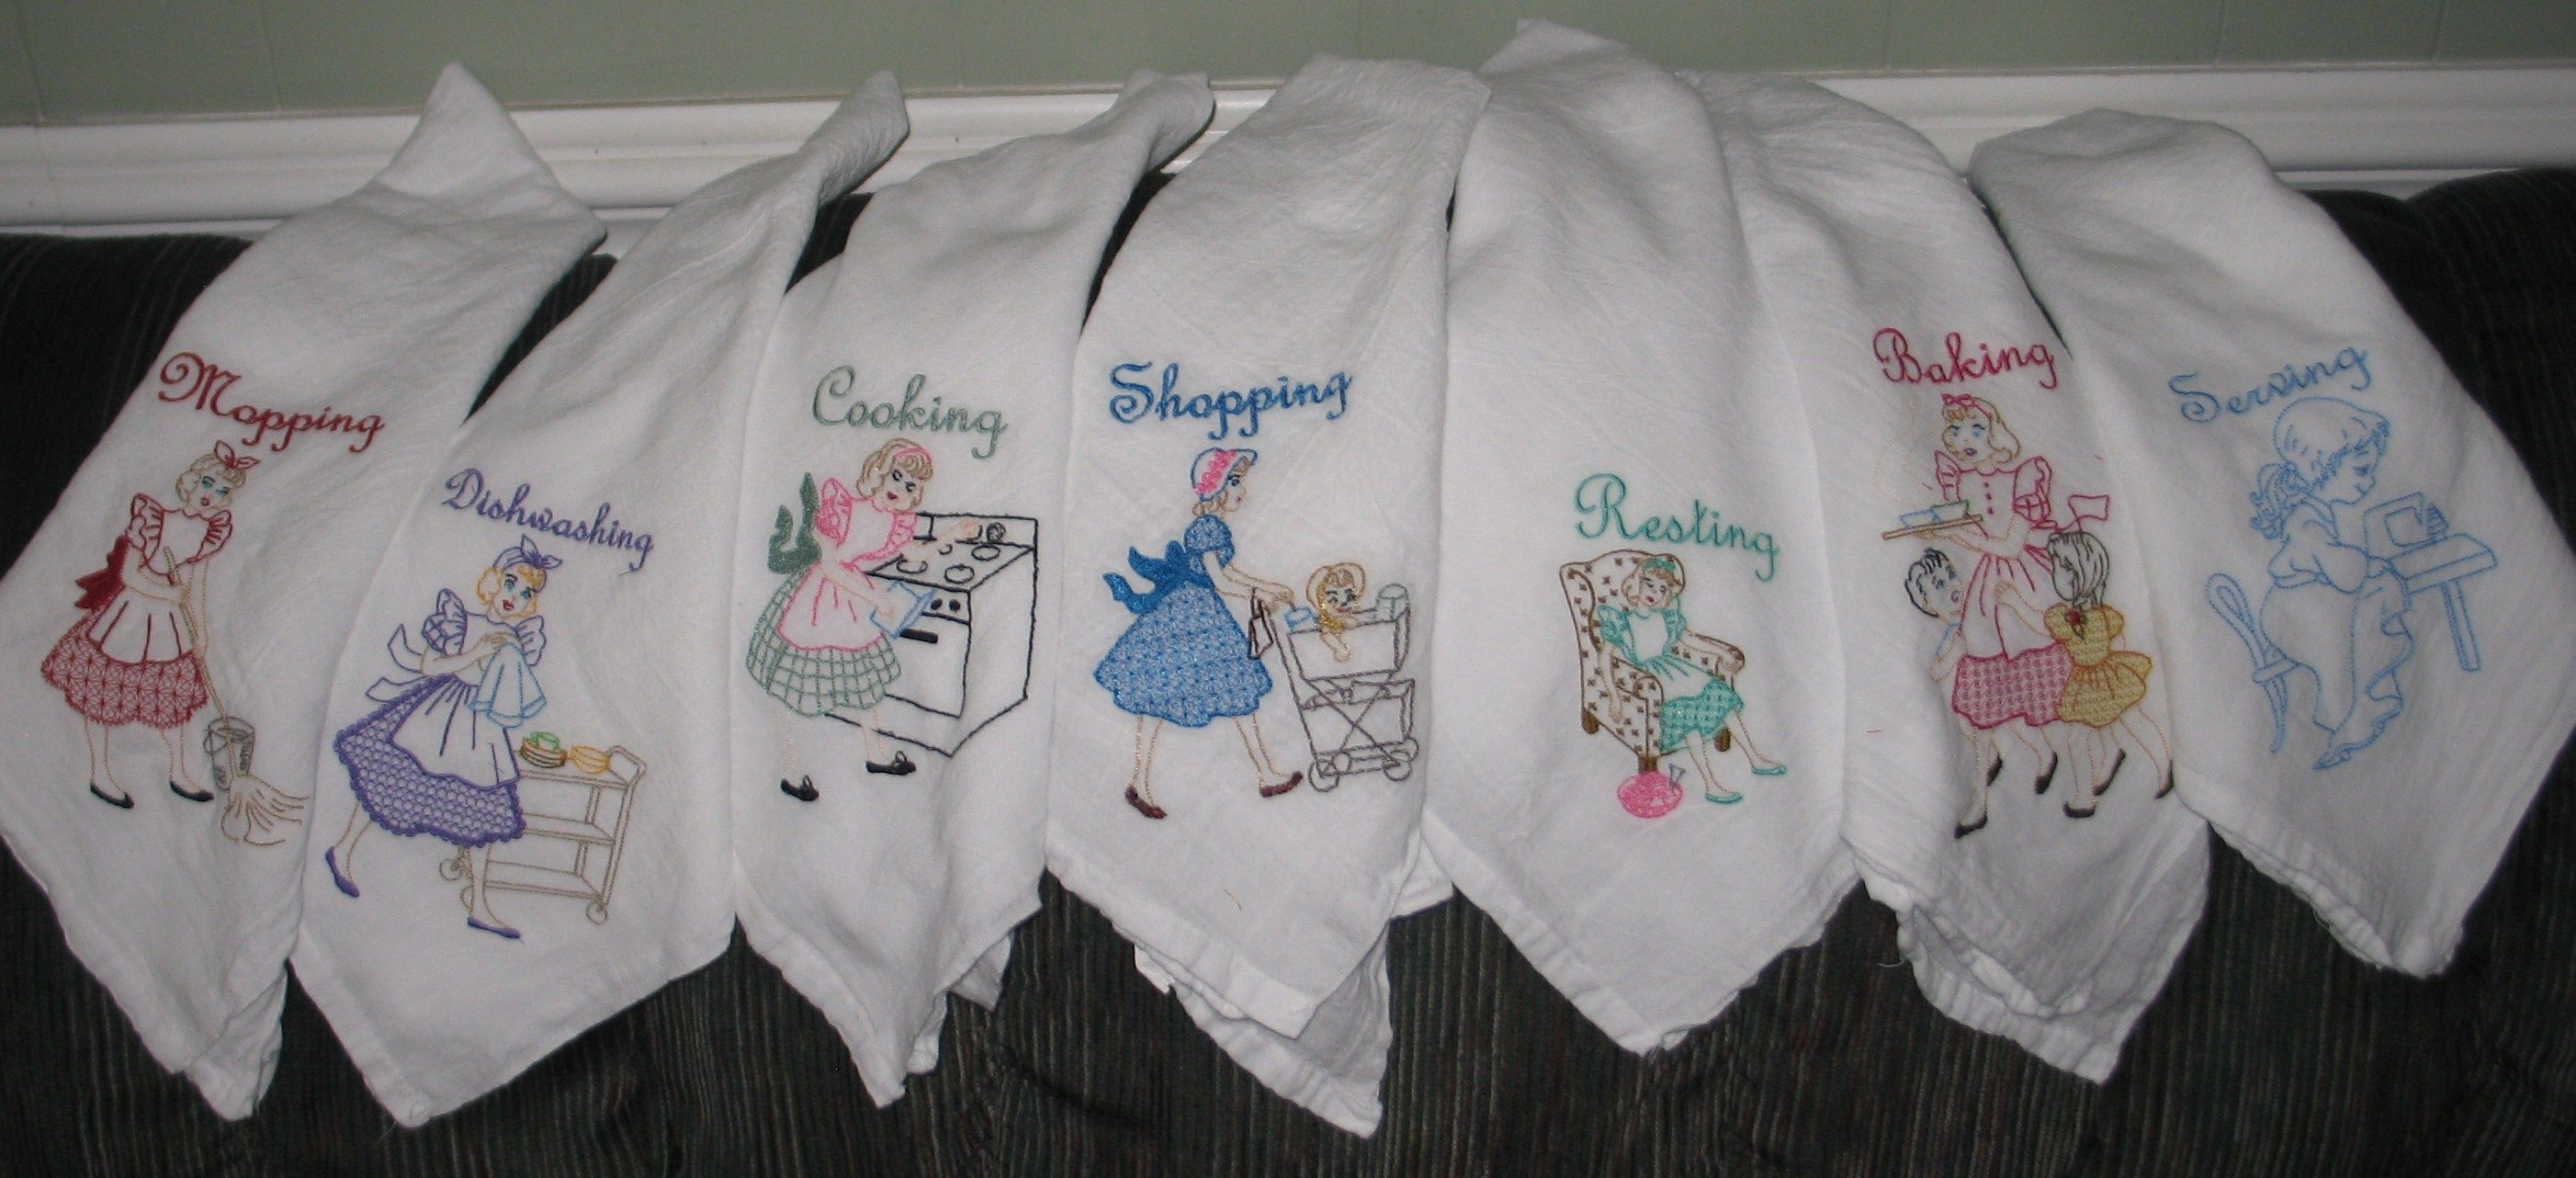 Embroidery Patterns For Kitchen Towels To Be Hand Embroidered Dish